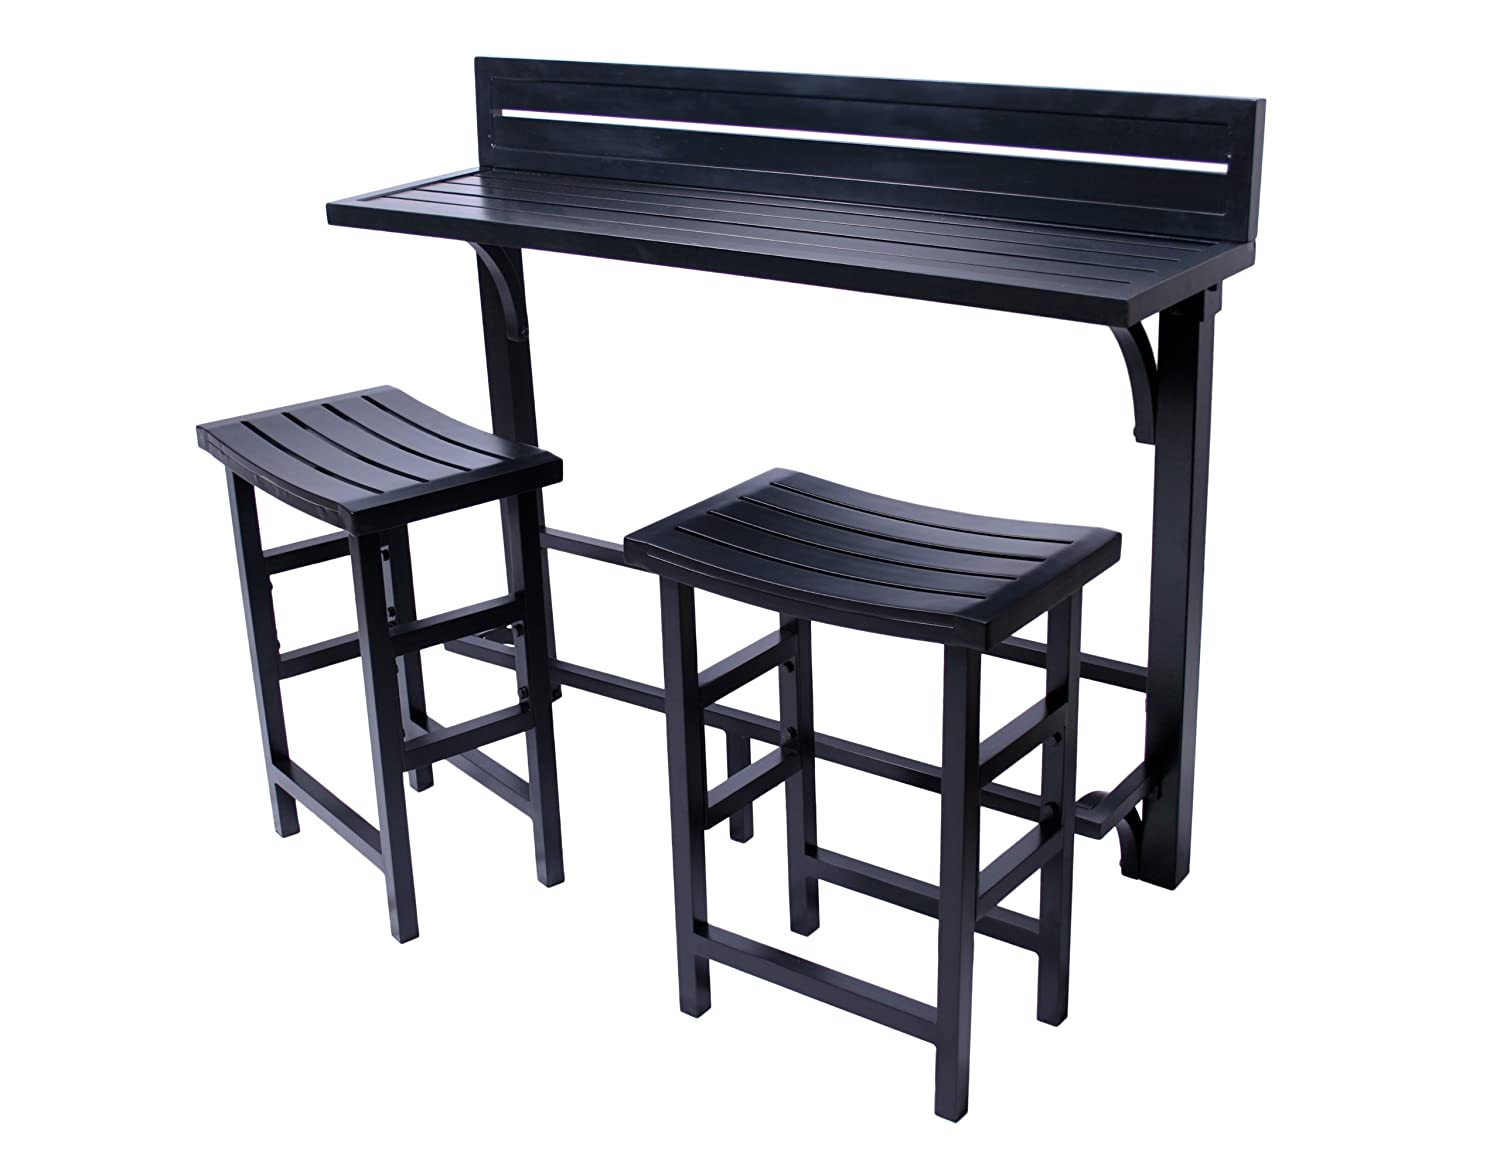 amazon com miyu furniture 3 piece balcony bar onyx garden